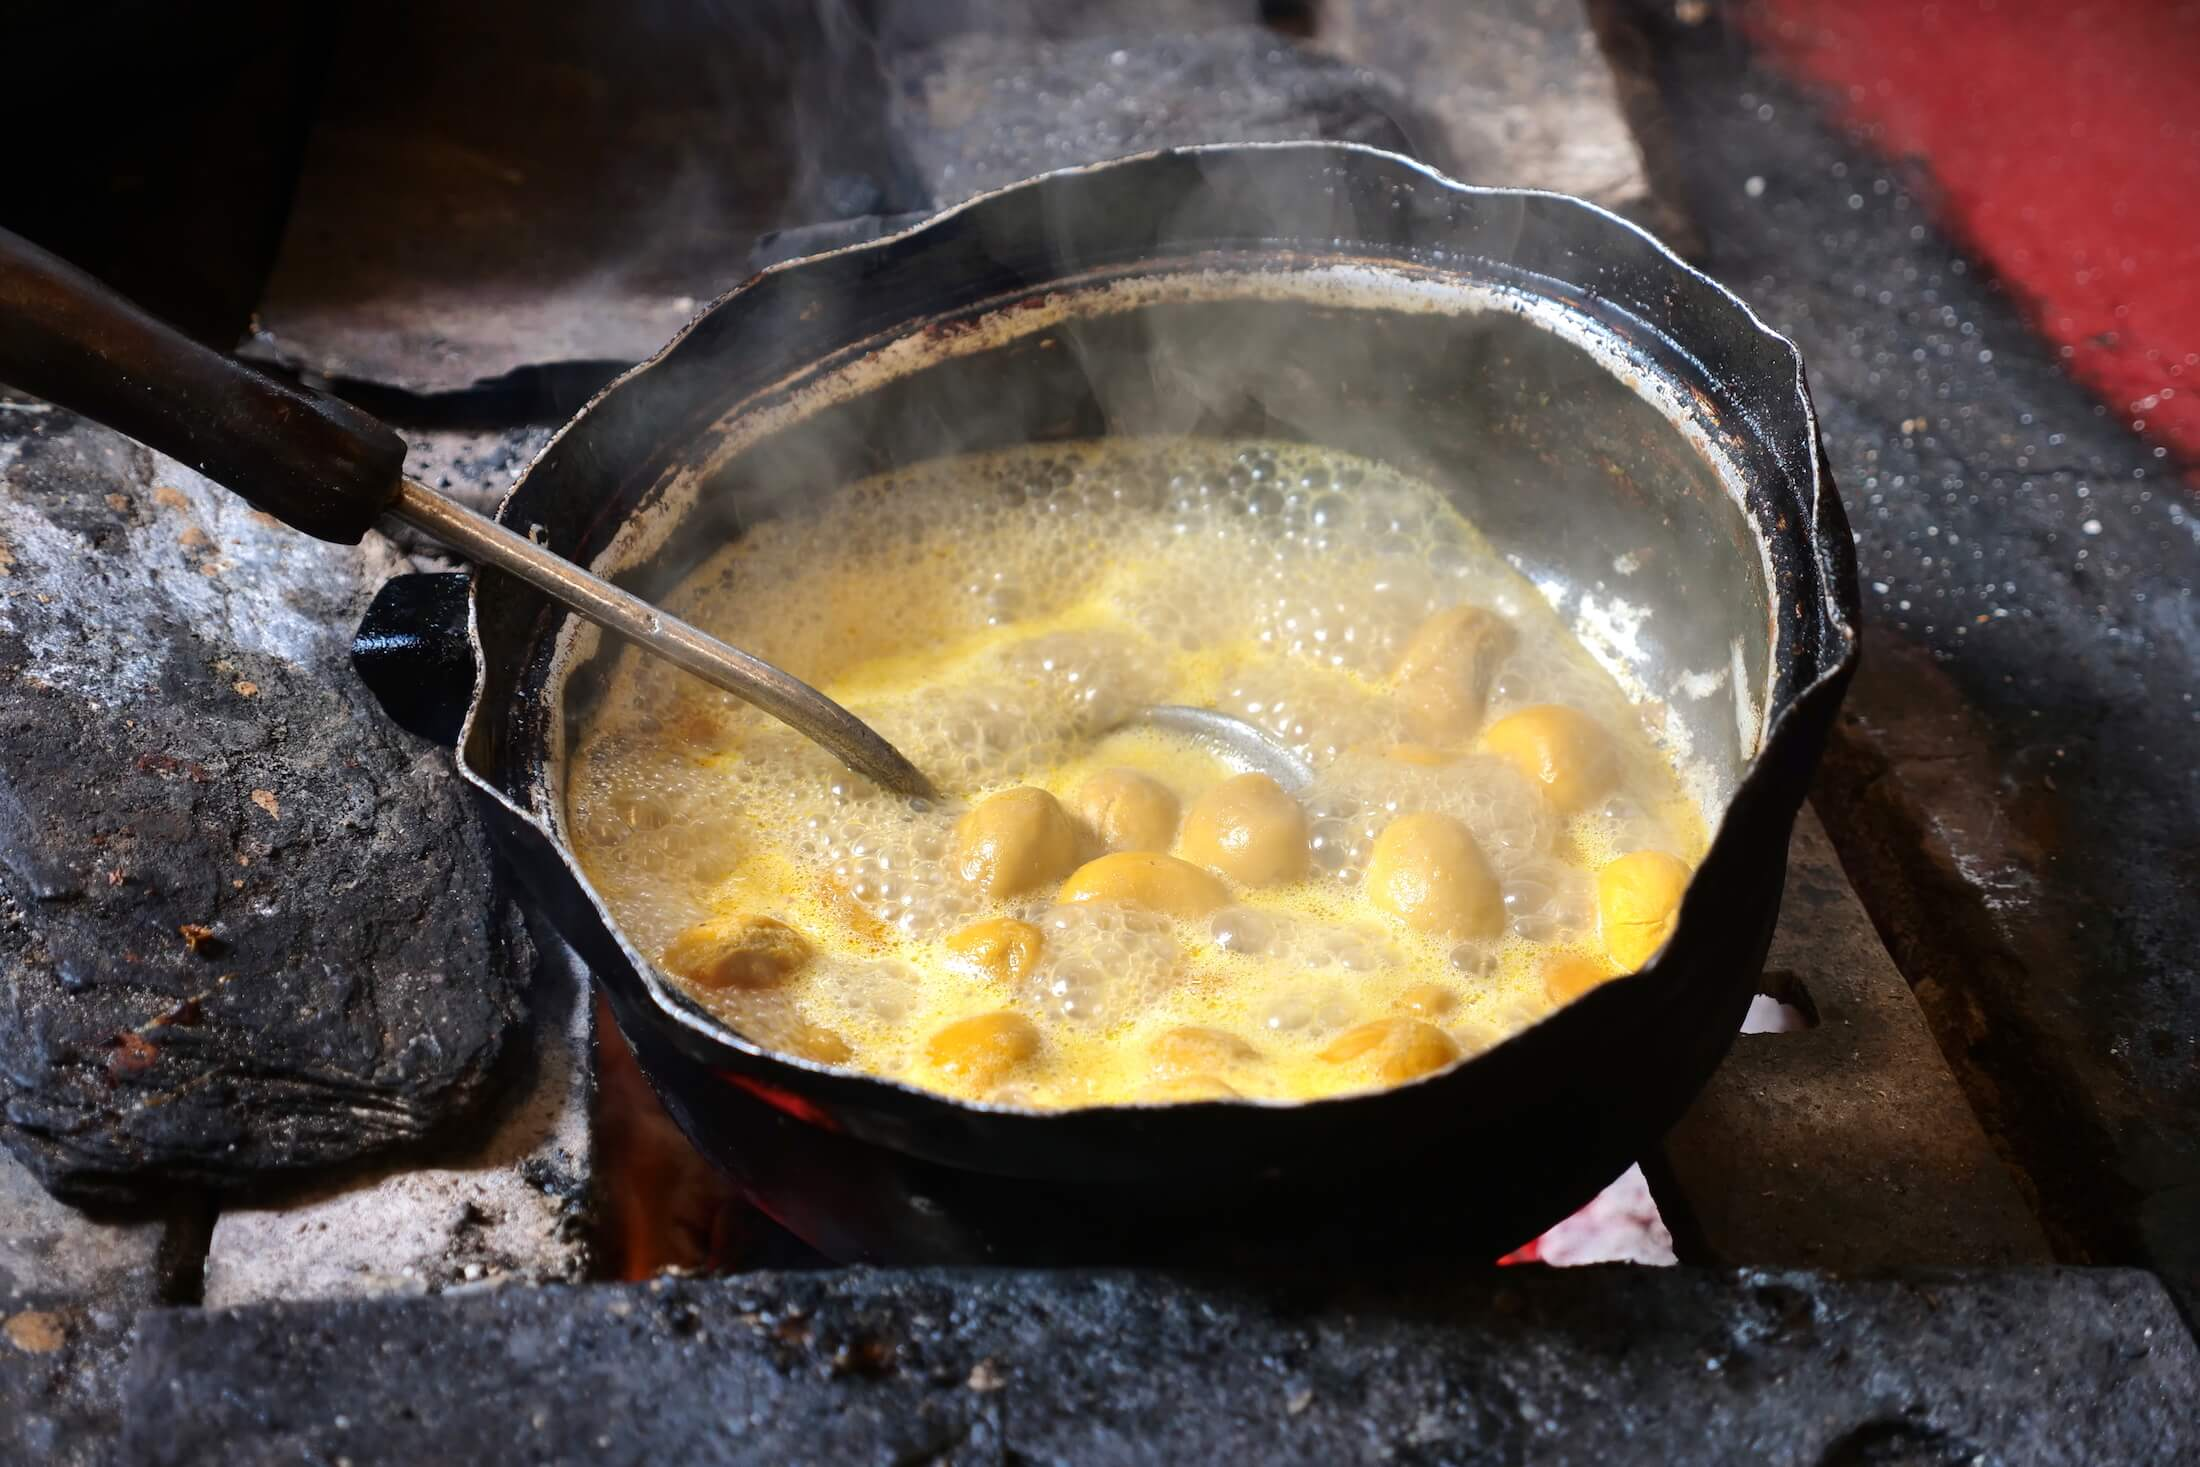 pequi fruit frying in just oil and its own moisture